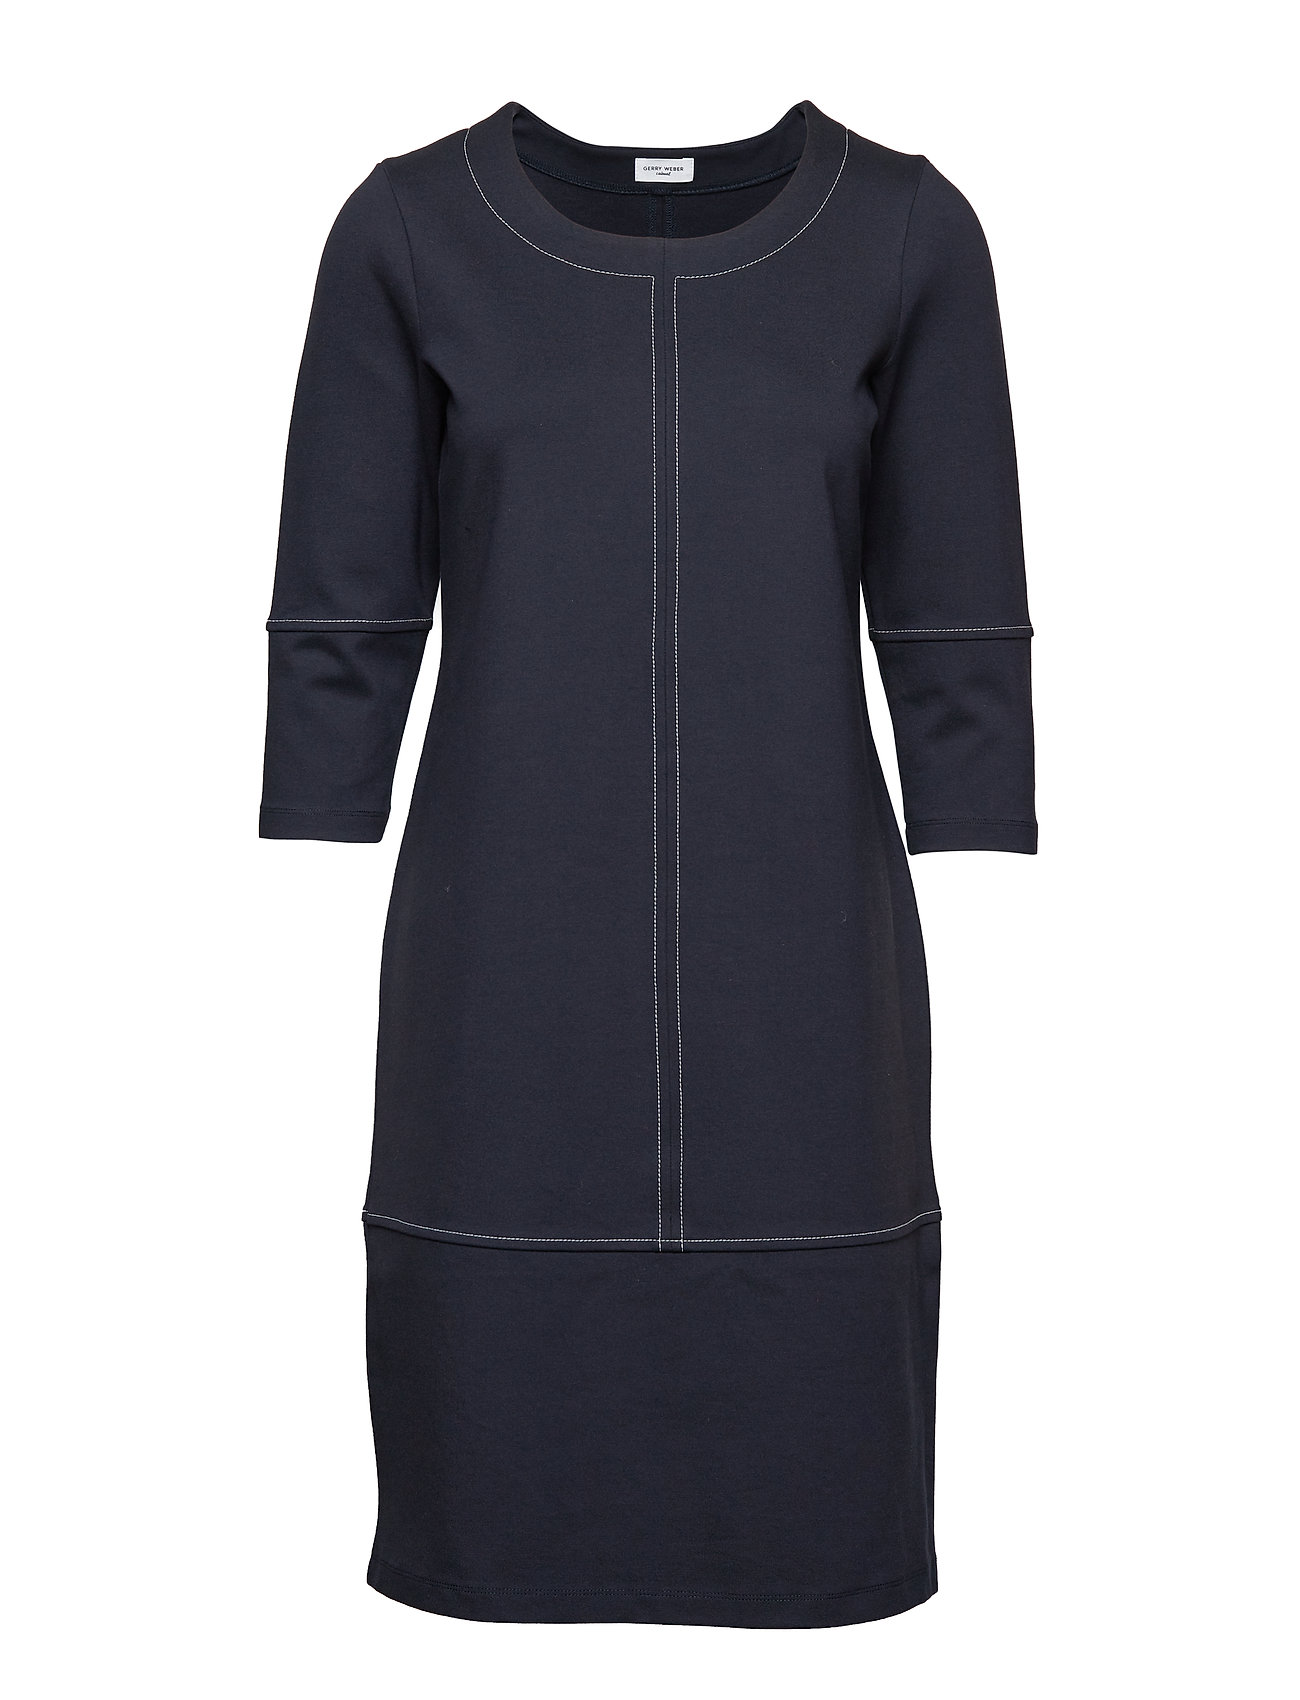 Dress Knitted Fabric - Gerry Weber Edition